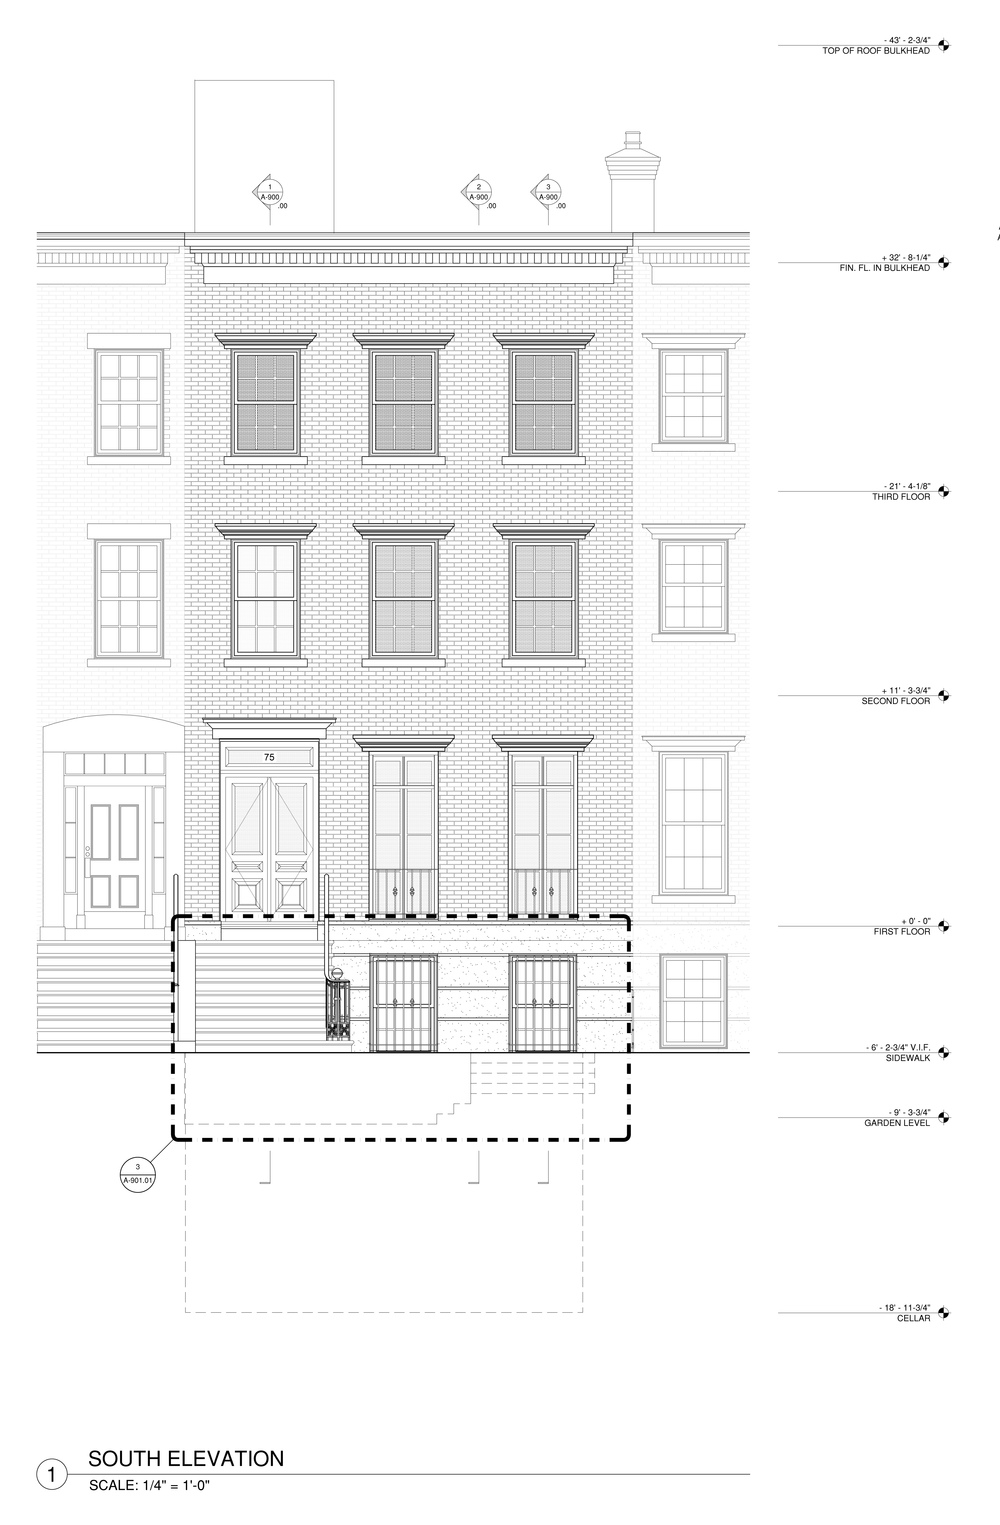 06 - South Elevation.jpg